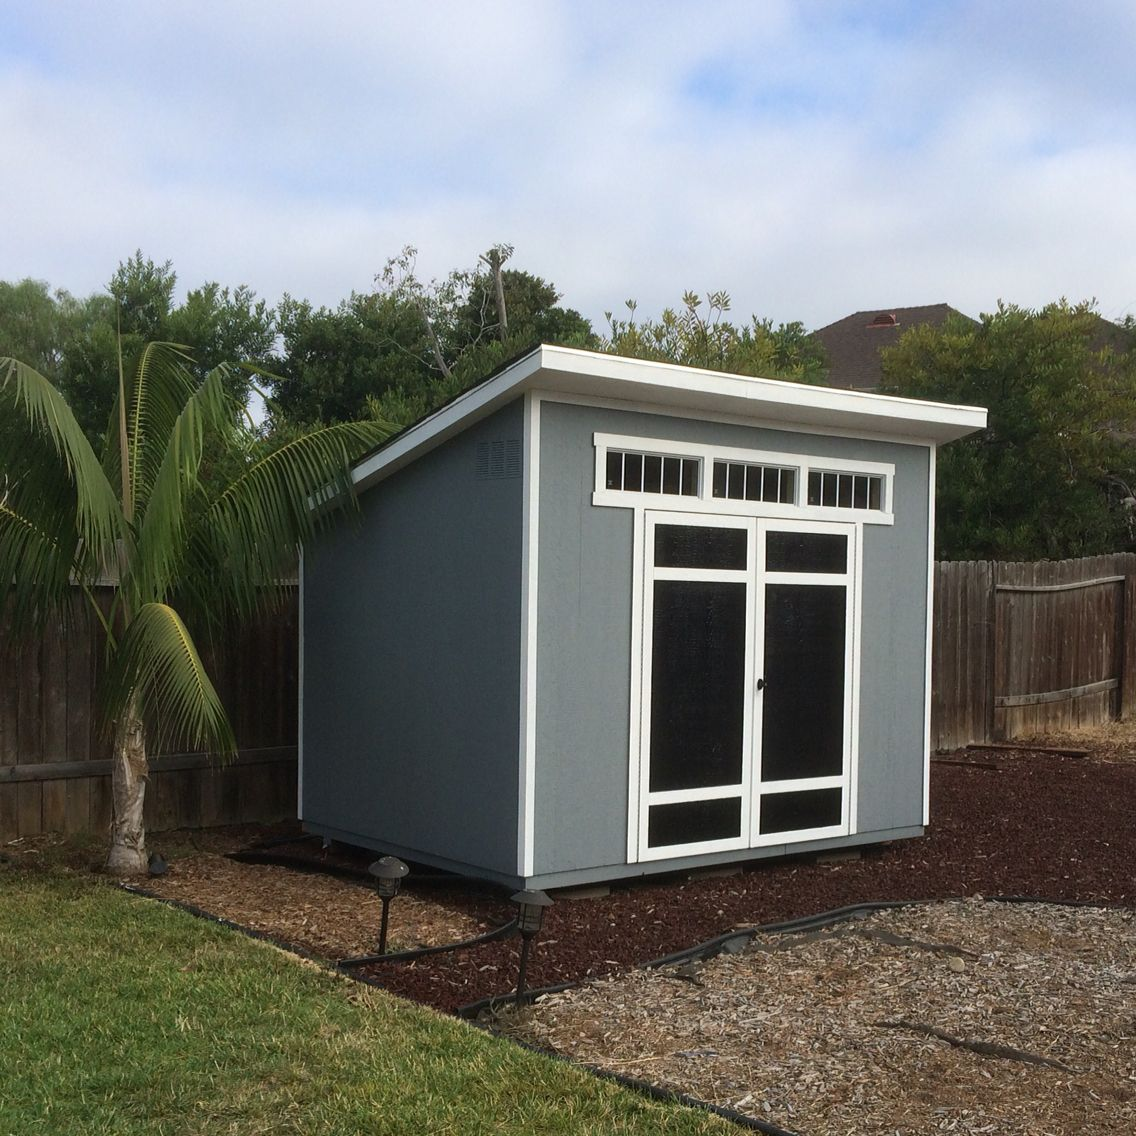 Costco Aston Shed Outdoor remodel, Shed building plans, Shed